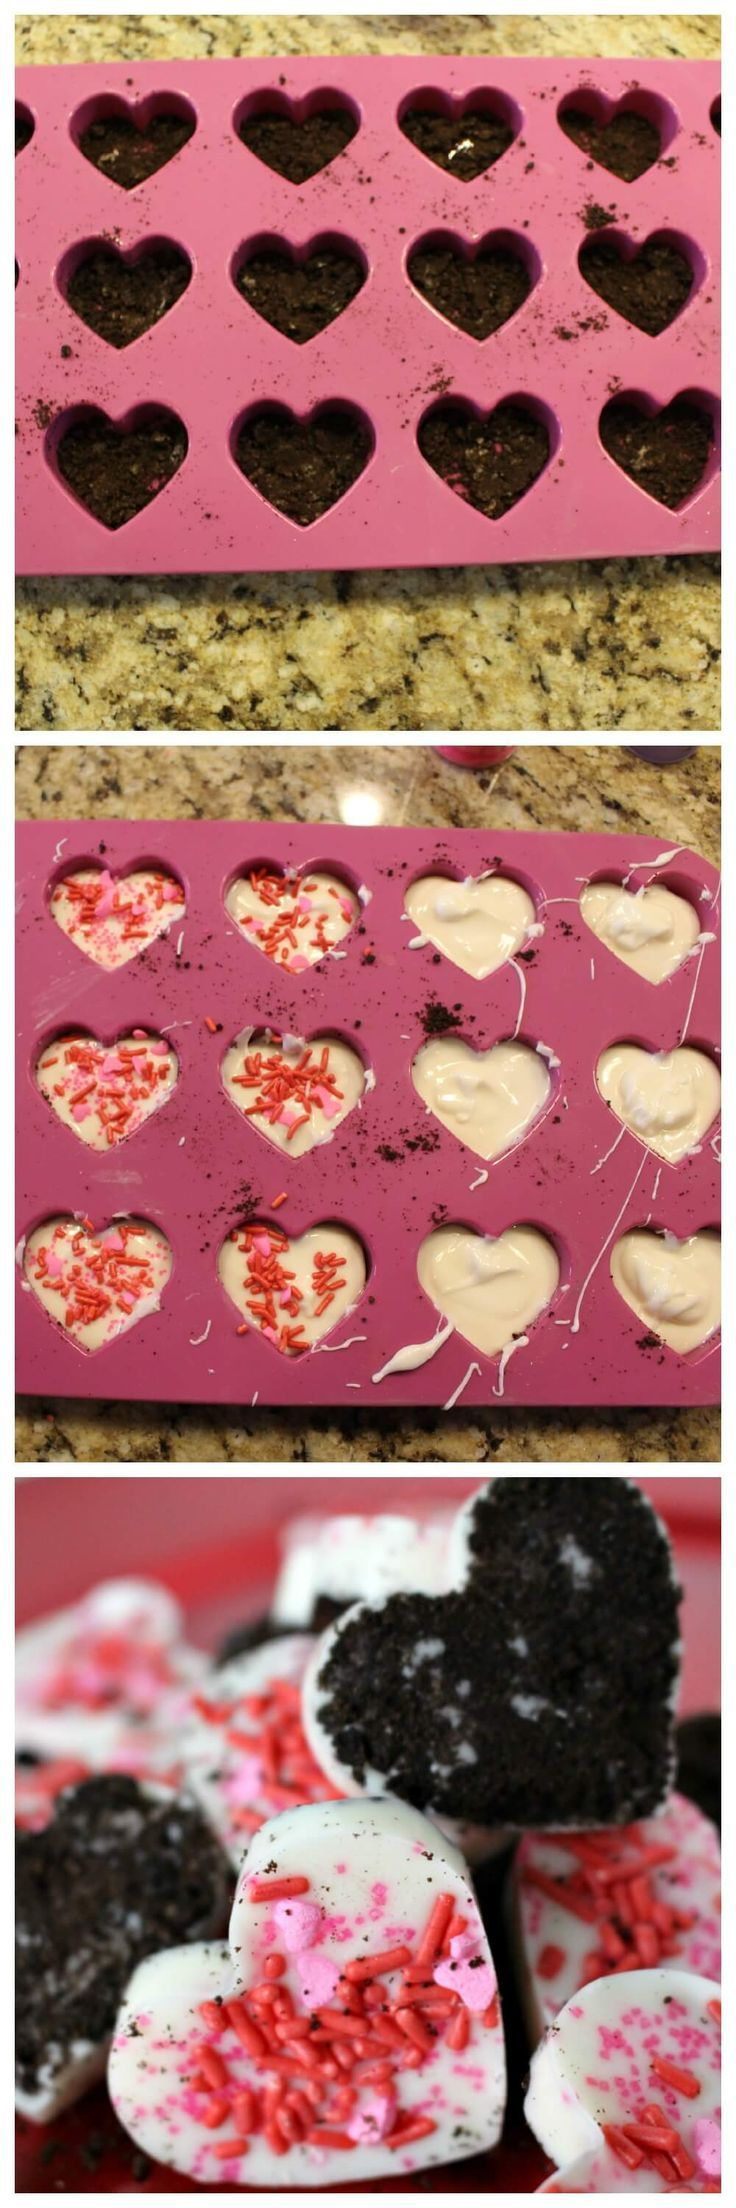 How to make white chocolate Oreo hearts for Valentines Day